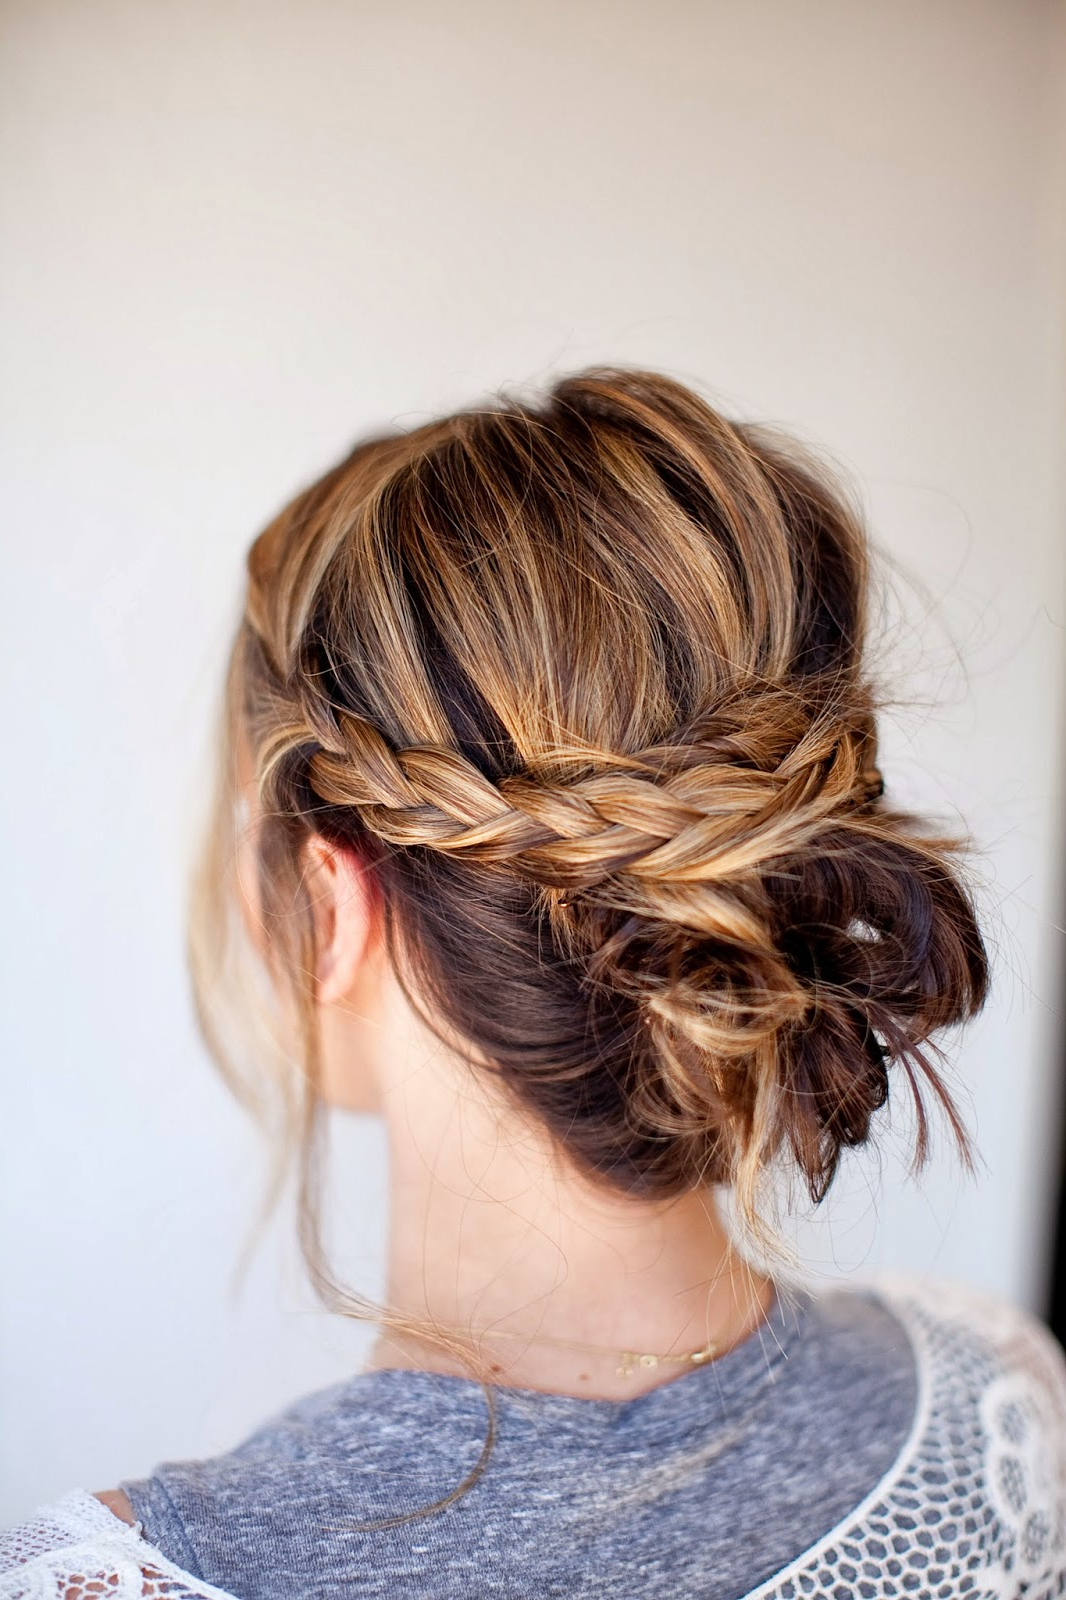 20 Best Ideas of Bohemian Braided Bun Bridal Hairstyles For Short Hair